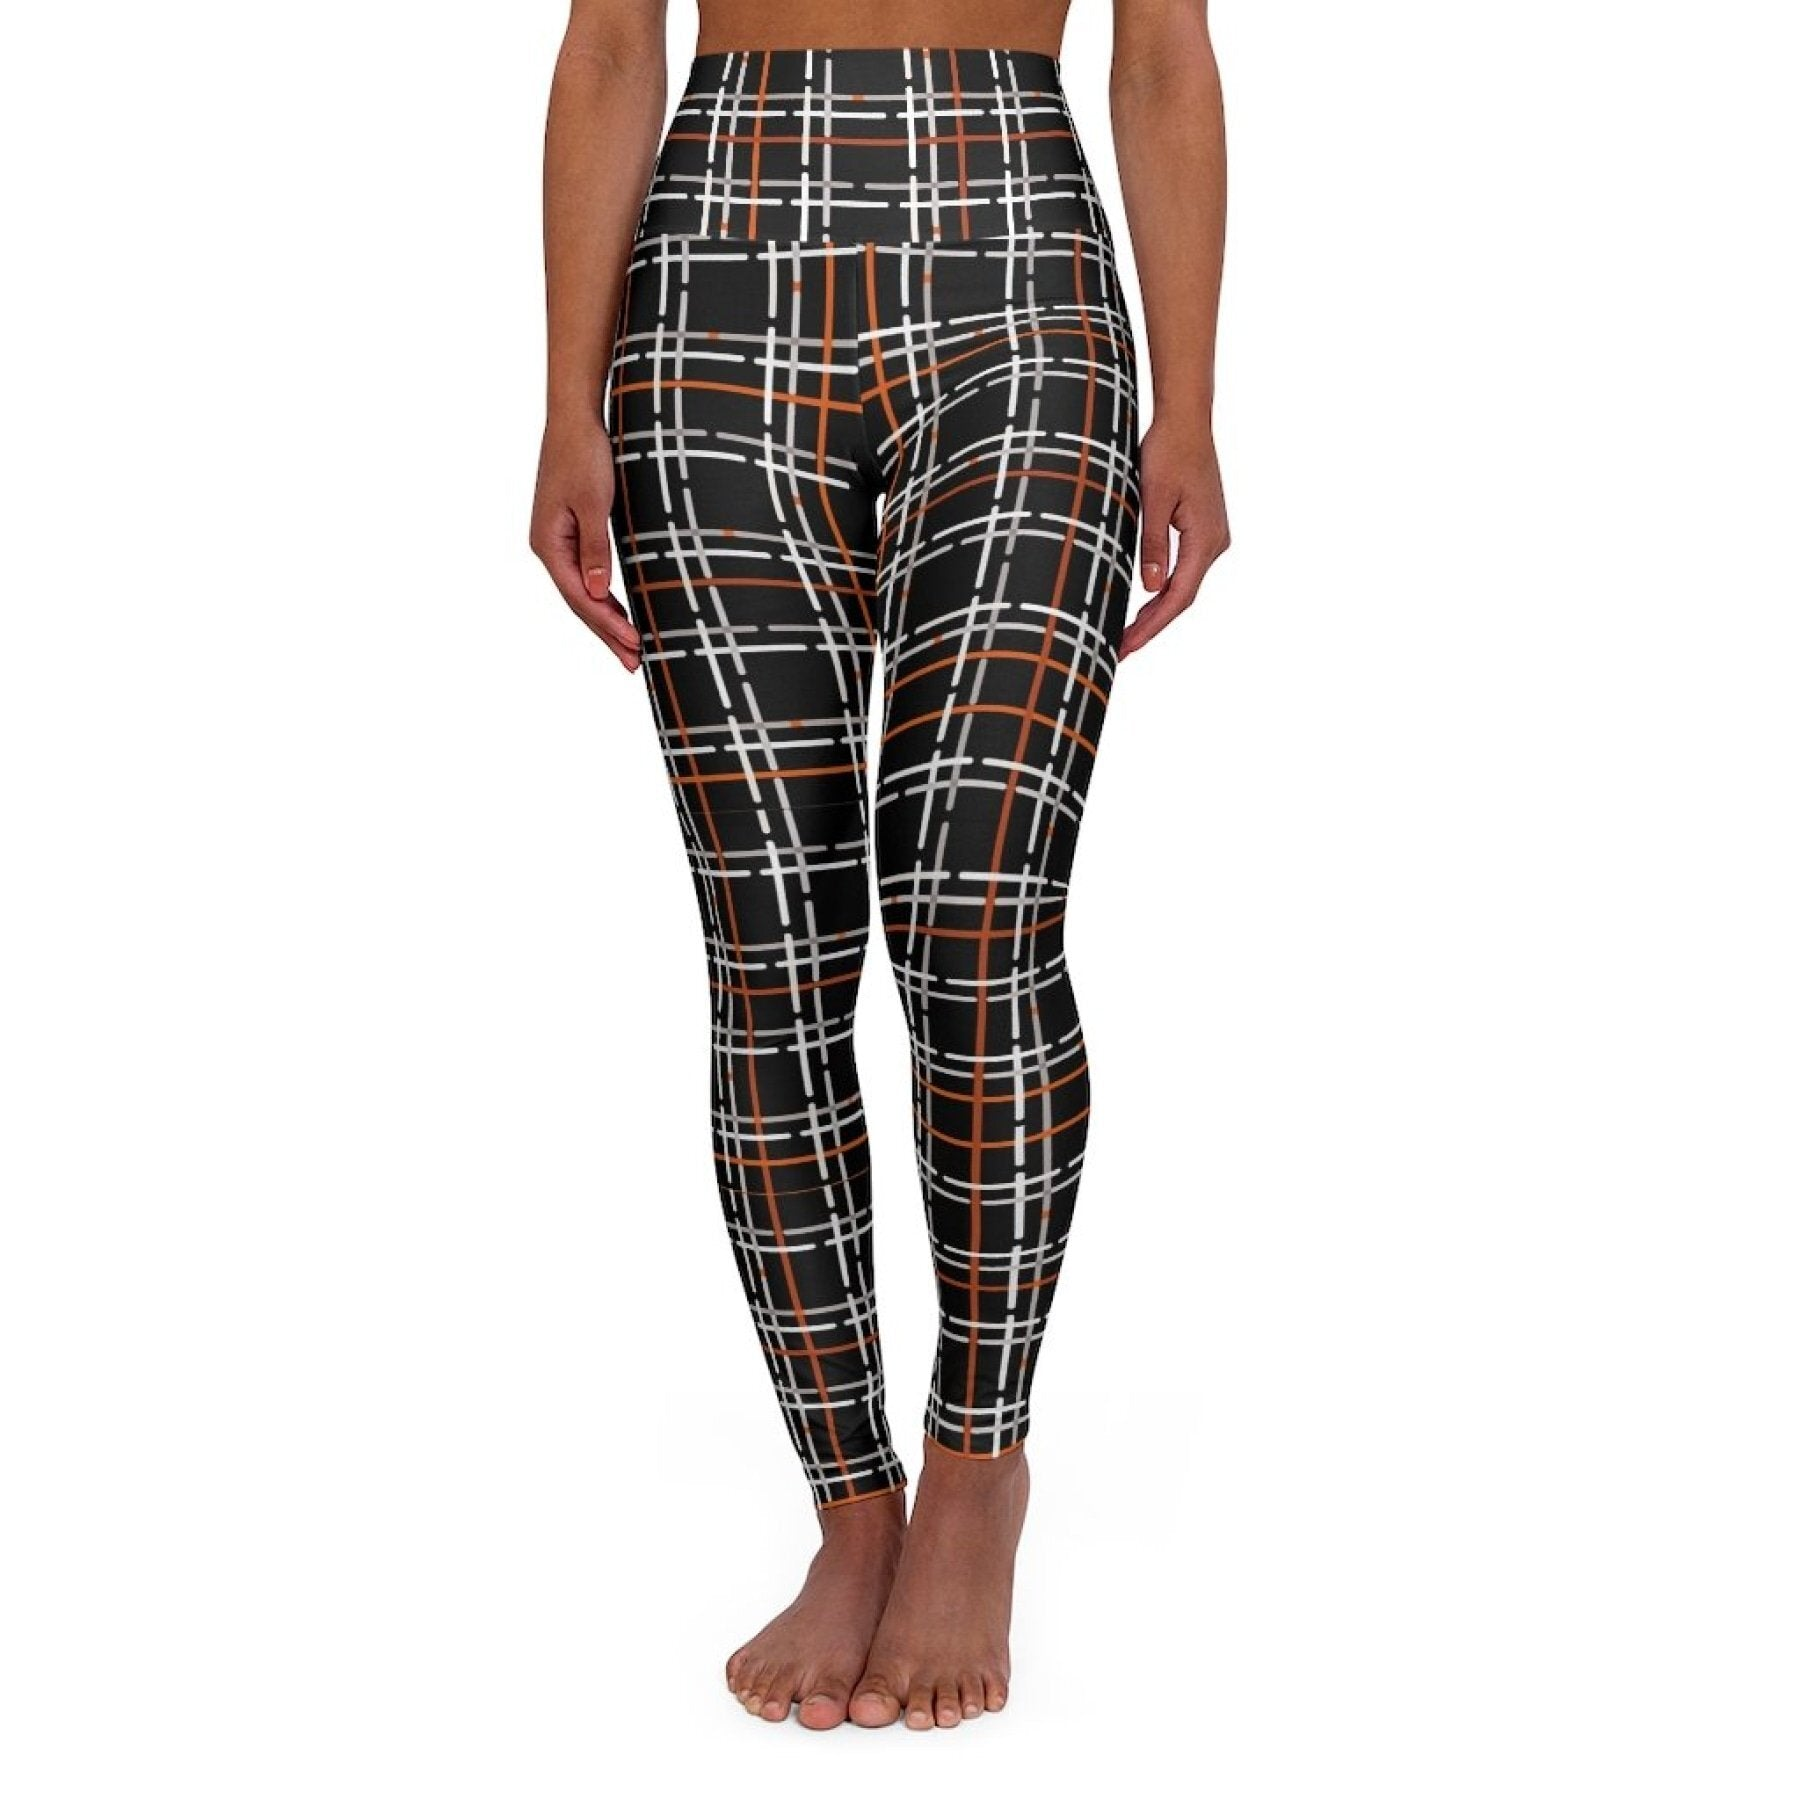 High Waisted Yoga Leggings, Black and Orange Tartan Style Pants